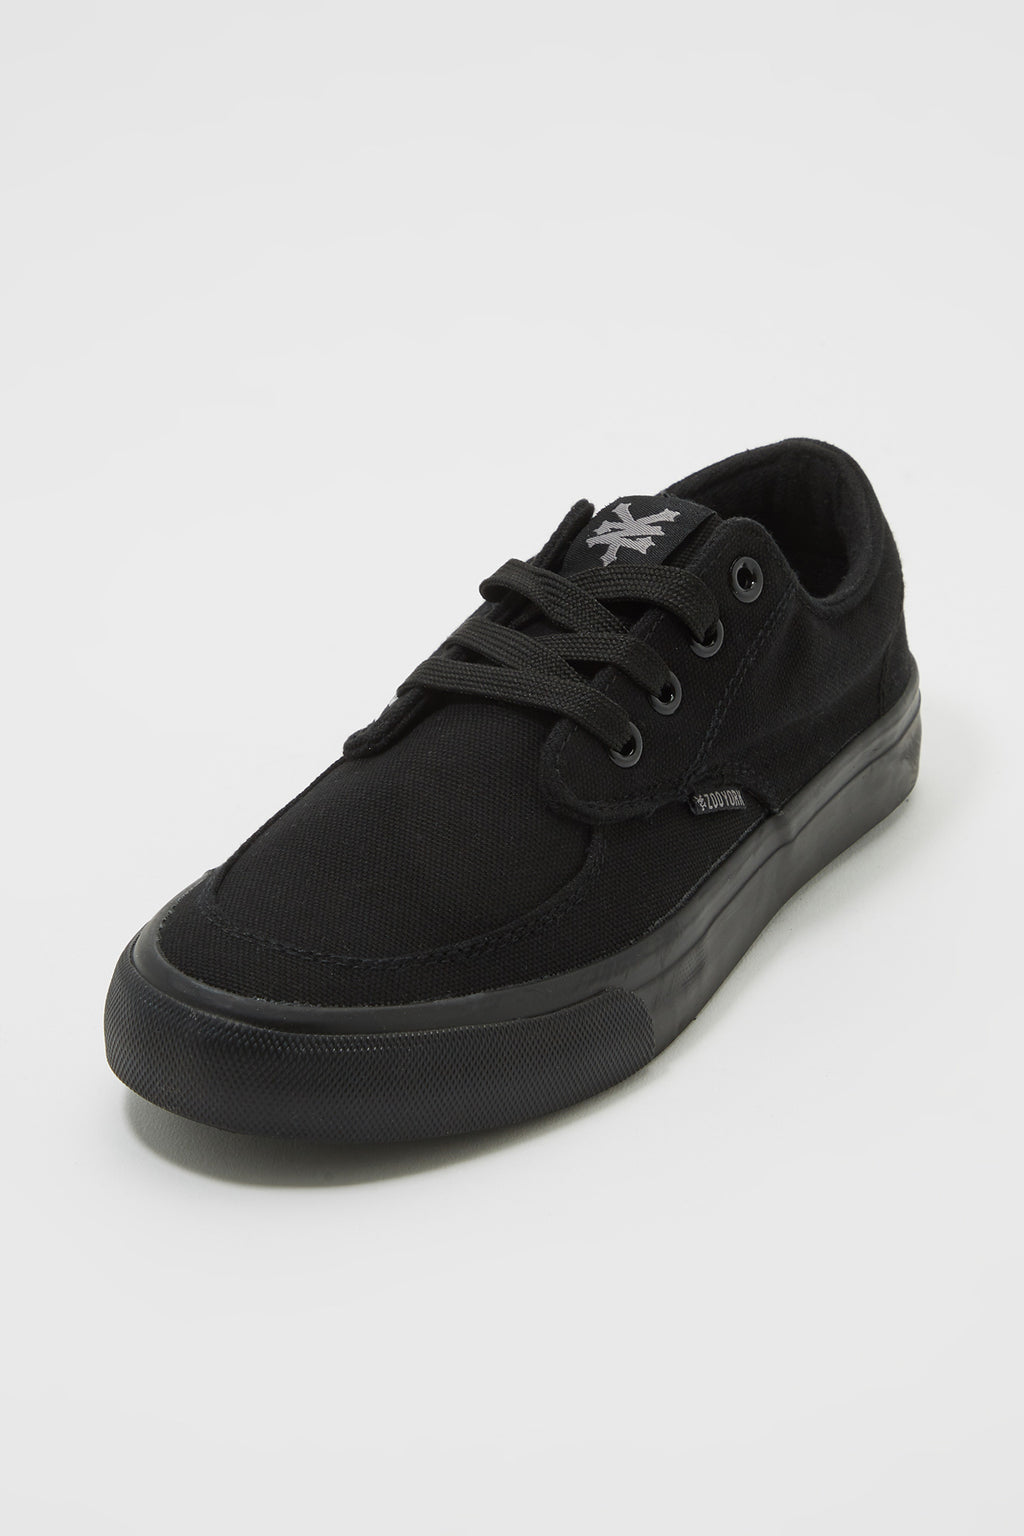 Zoo York Boys All Black Ryan Canvas Shoes